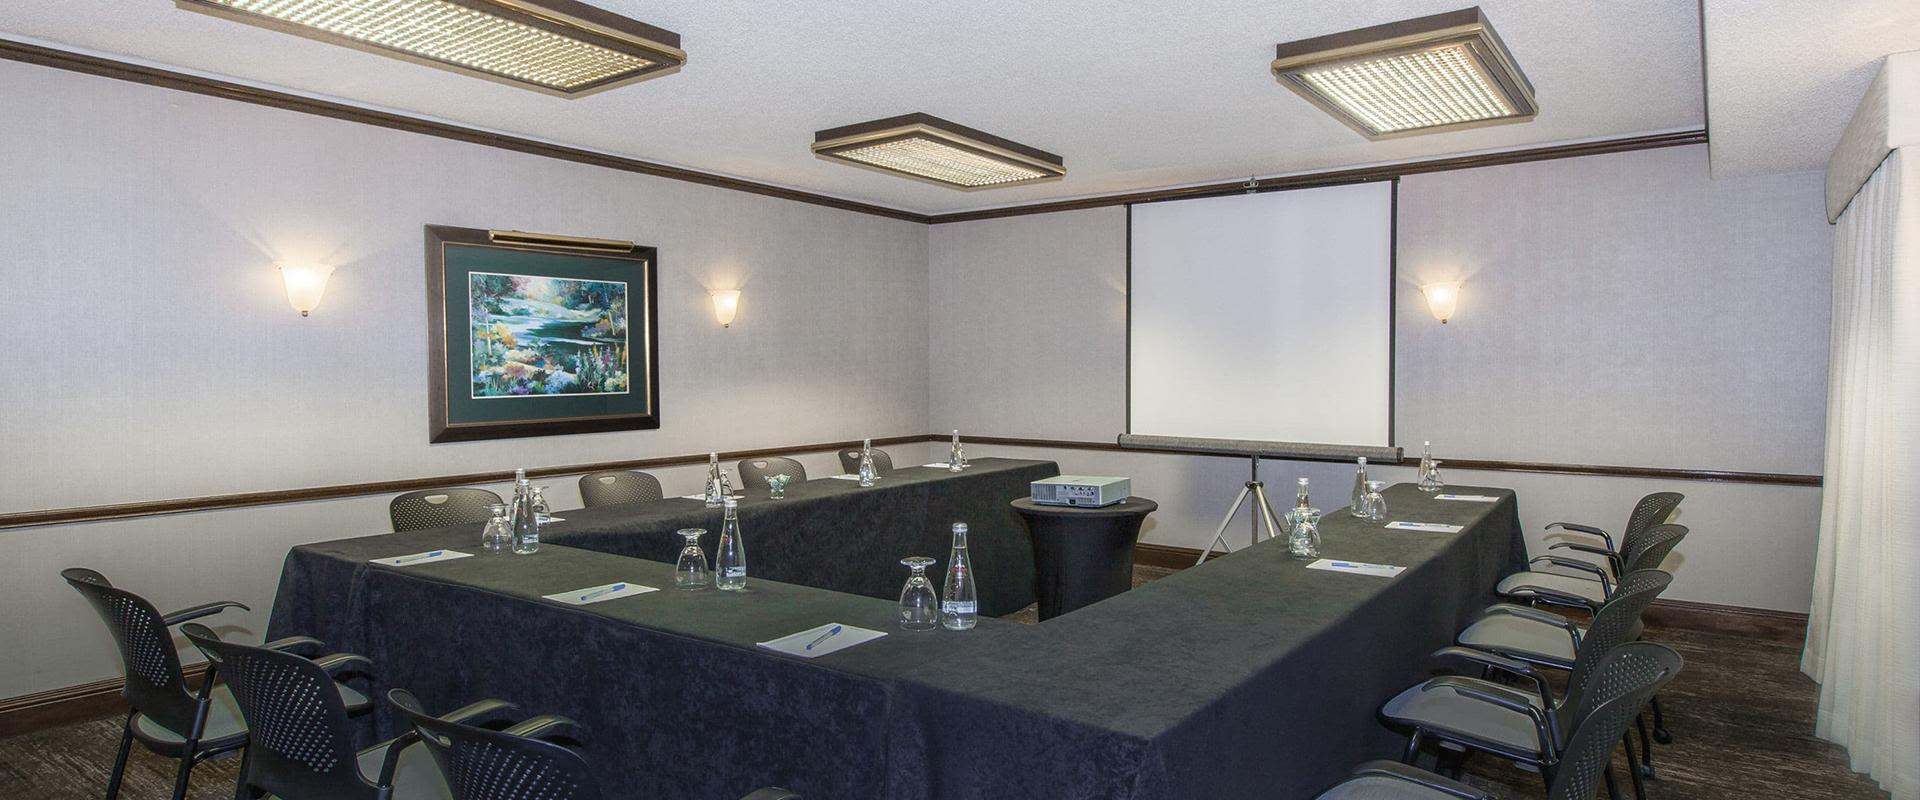 Small Meeting Room with U Shaped Tables